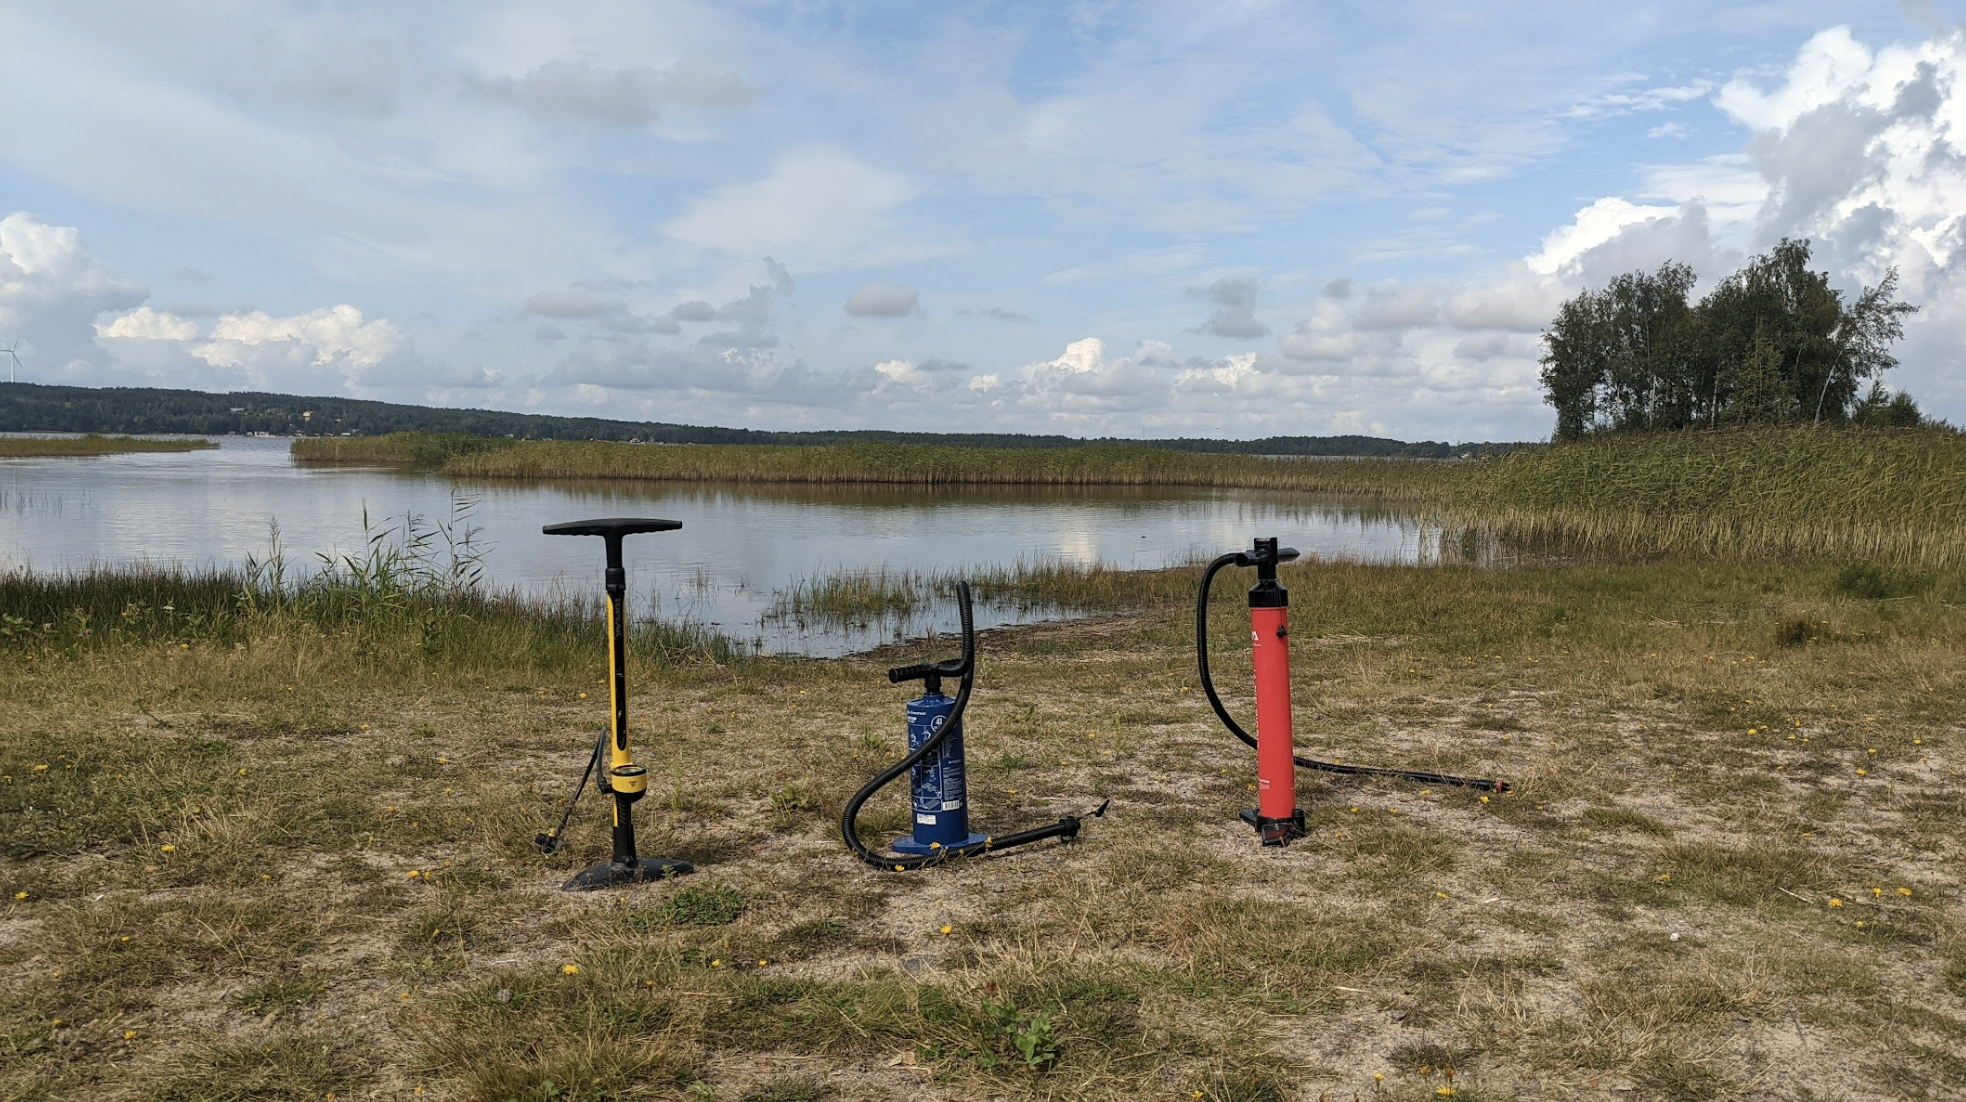 I think i'm doing something wrong. Bike (left), Mattrass, SUP board (right)